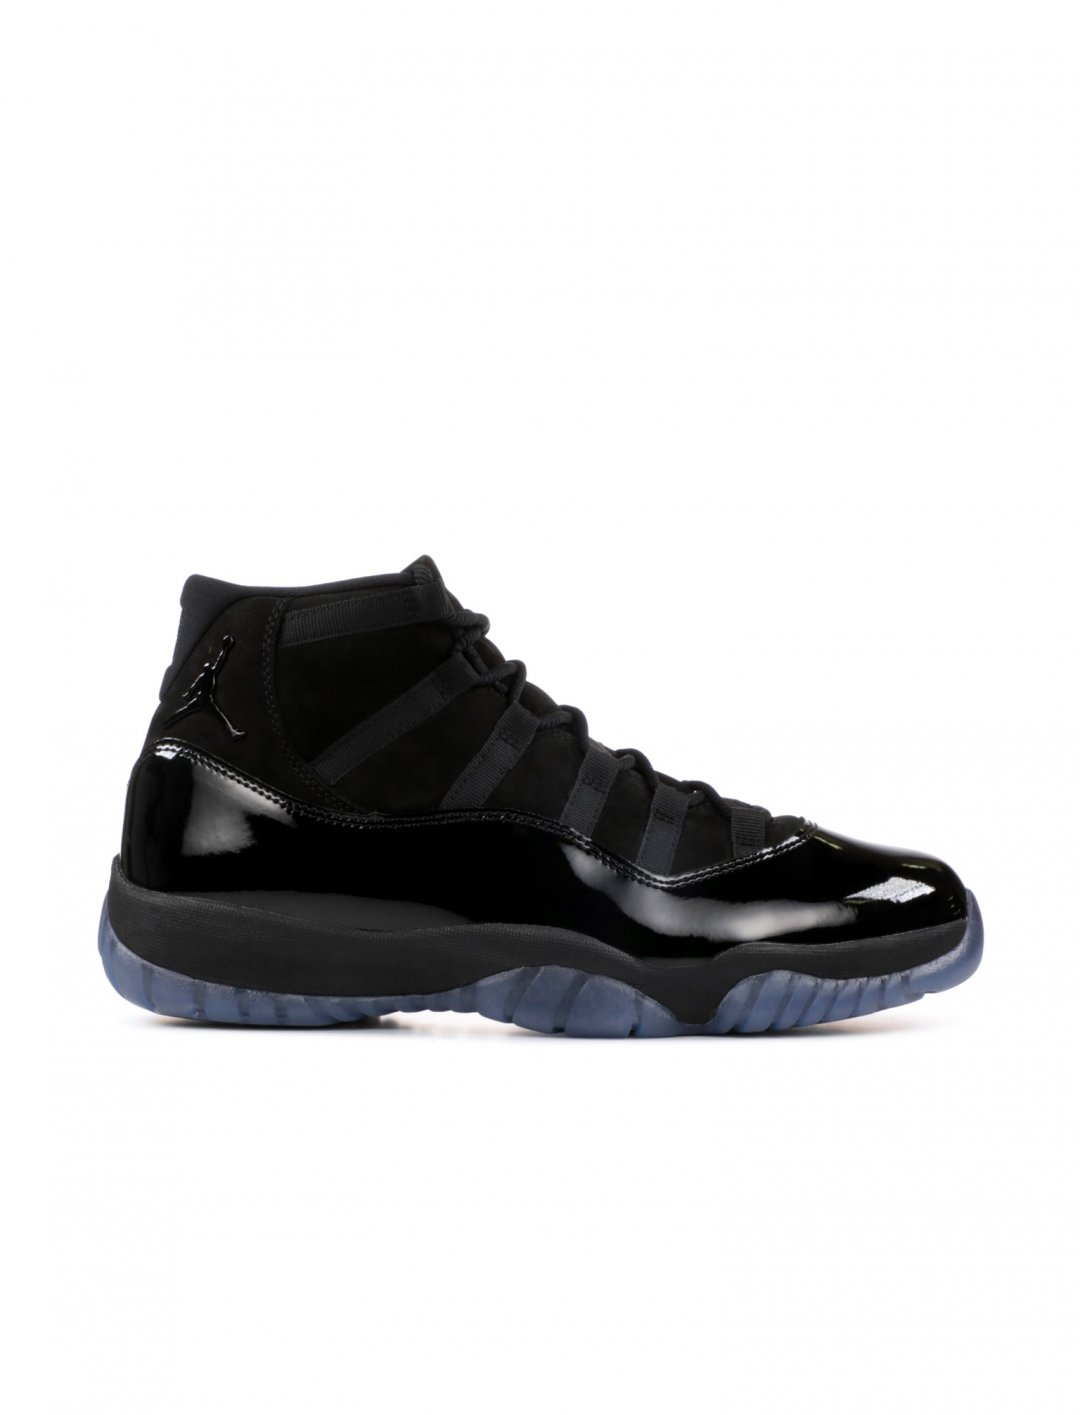 "Russ' Air Jordan 11 Retro {""id"":12,""product_section_id"":1,""name"":""Shoes"",""order"":12} Air Jordan"